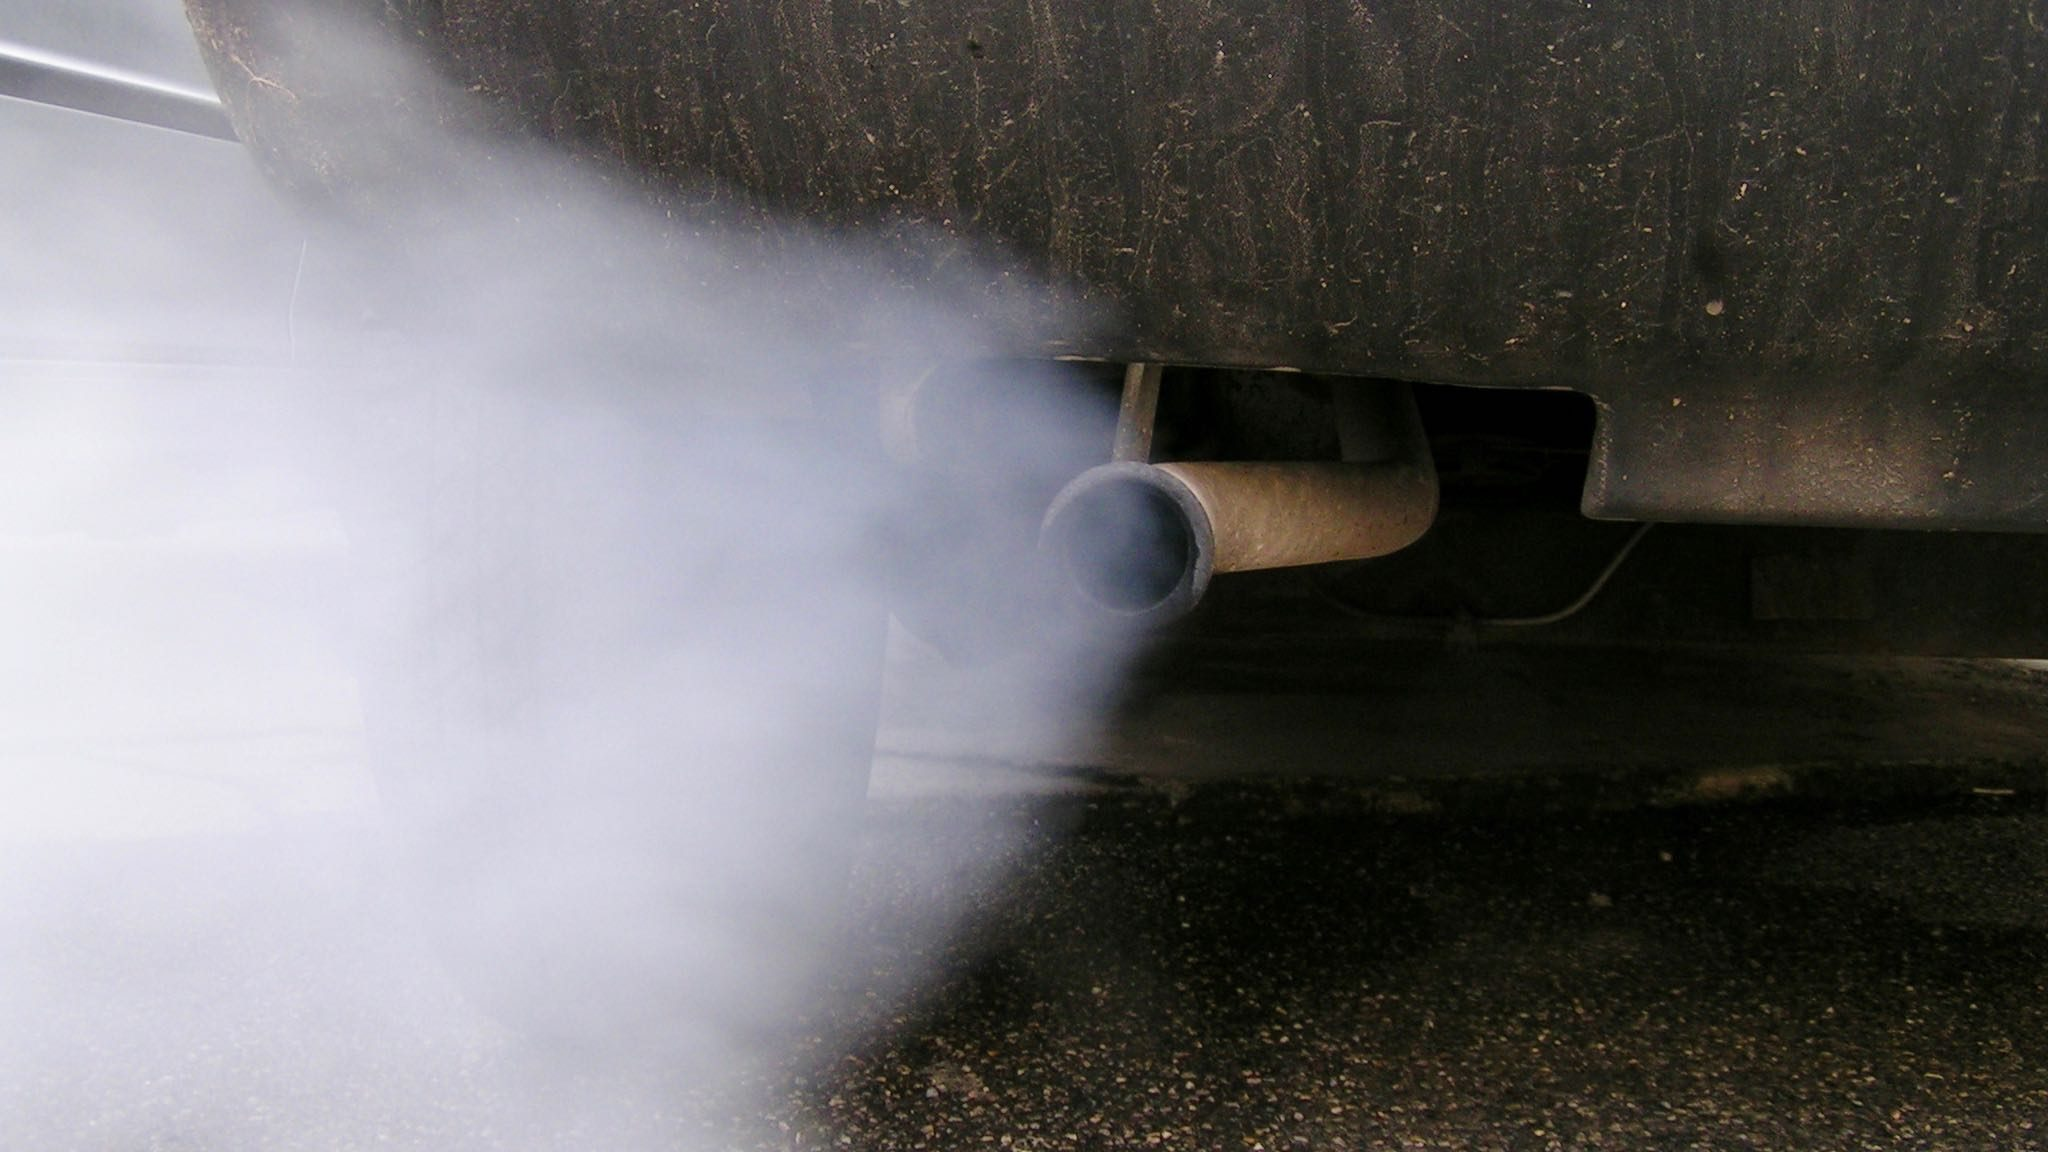 car exhaust cause air pollution Pollution from car exhaust: air pollution from cars tailpipe tally air pollution constricts healthy blood vessels lemon cars since the clean air act passed in the 1970s, the average car pollutes a lot less than before.